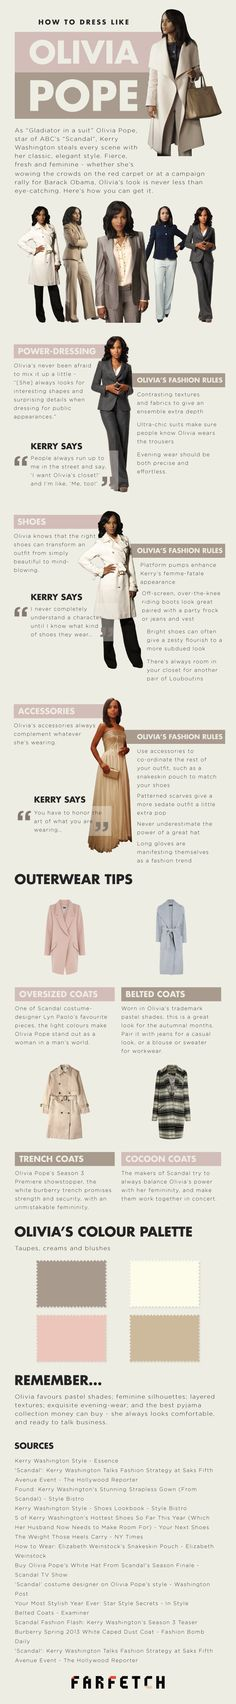 Infographic: How to dress like Olivia Pope